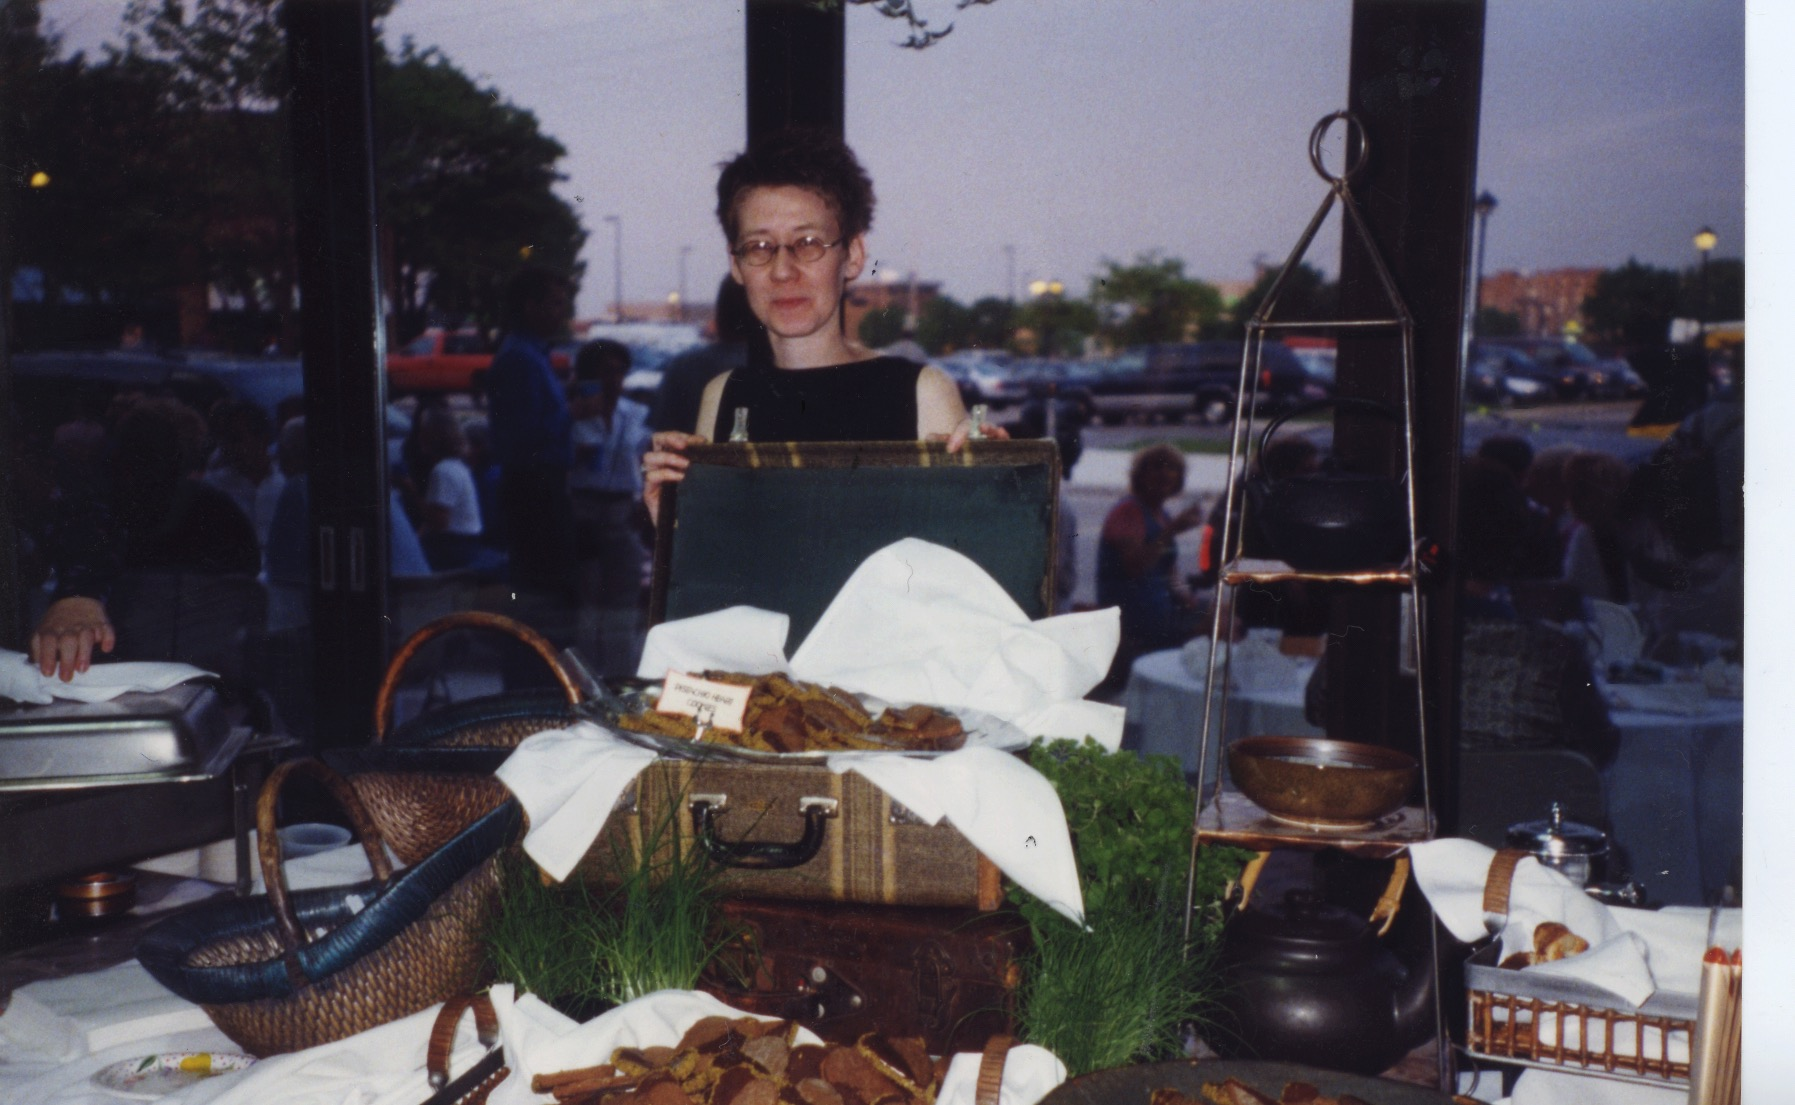 Linda at On Broadway's very first Taste on Broadway, Summer 1999. Kavarna hadn't opened yet.